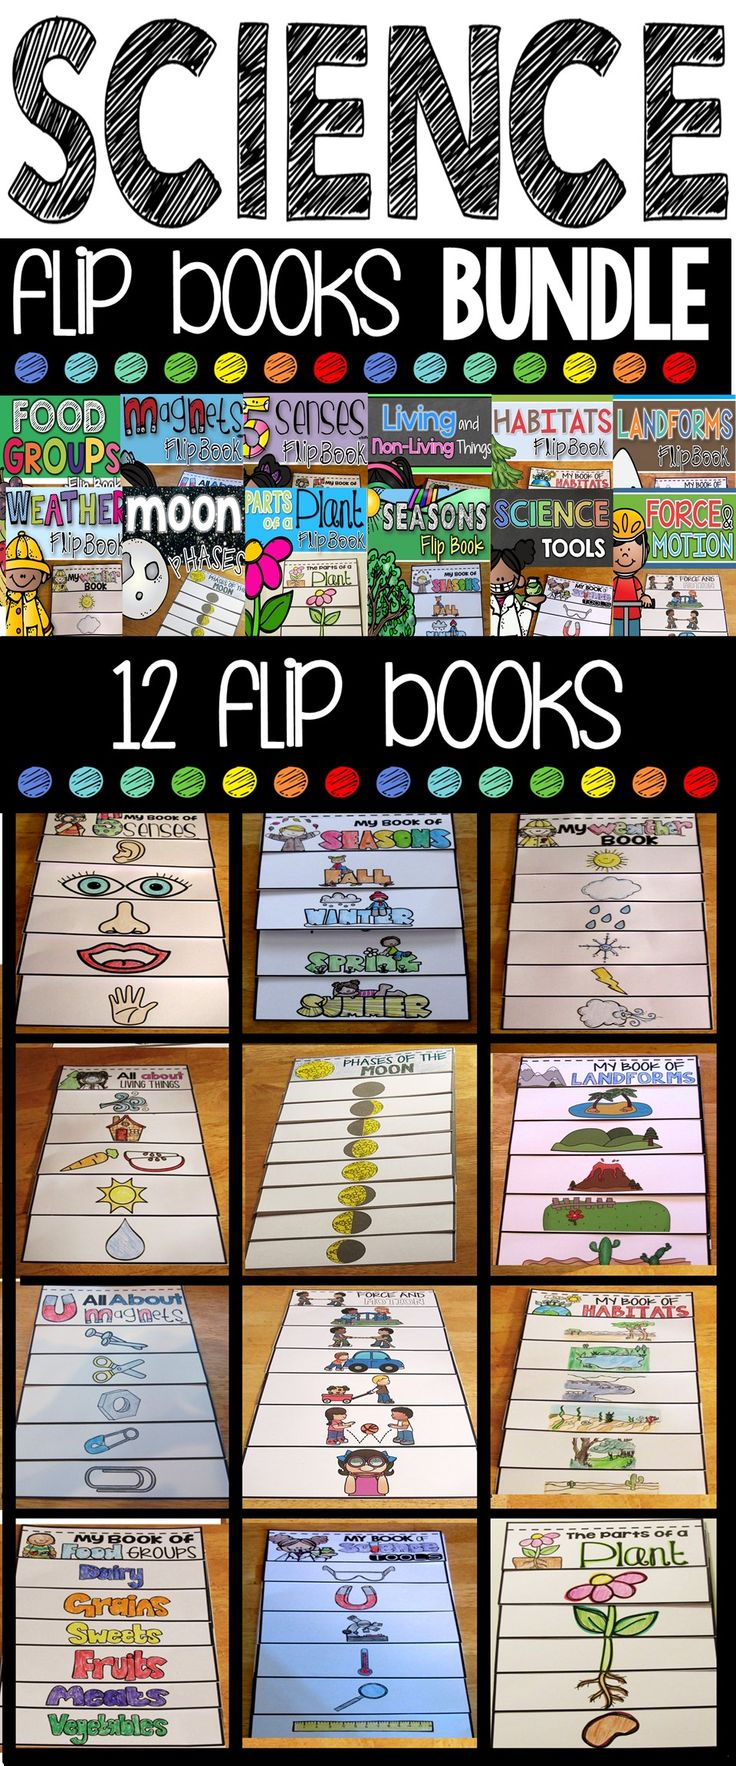 Science Flip Books. The science flip books growing bundle contains 13 interactive science flip books.  Each flip book contains multiple versions for the differentiated classroom!  Topics included are: Seasons, Weather,Food Groups,  5 Senses, Science Tools, Magnets, Parts of a Plant, Force & Motion, Landforms, Moon Phases, Living & Non-Living Things, Day&Night, and Habitats.